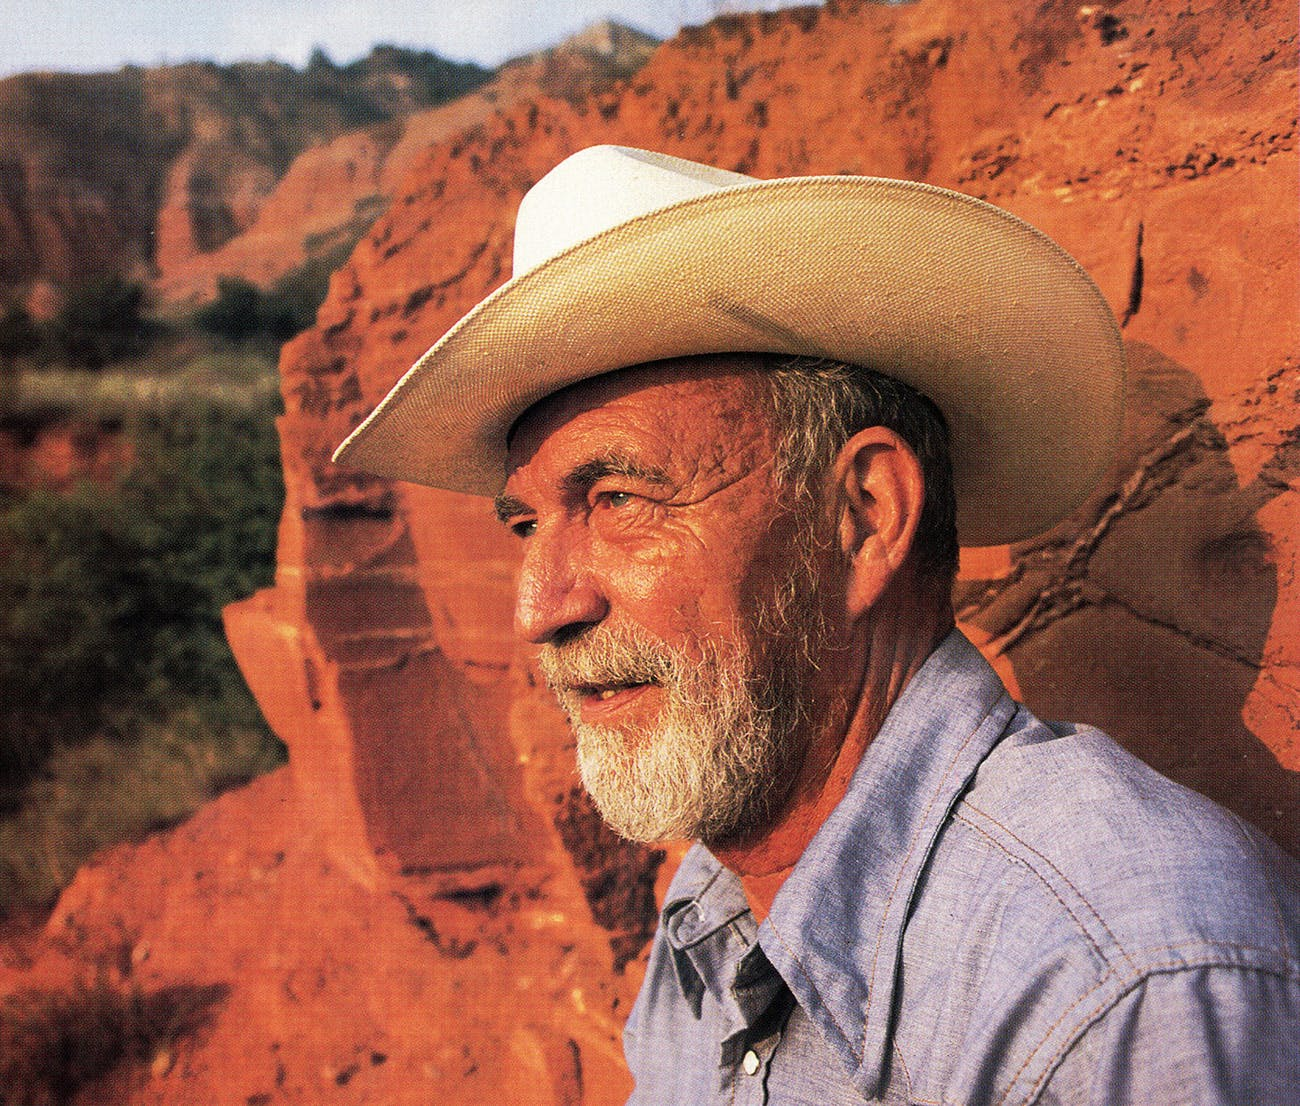 West Texas State professor Jack Hughes